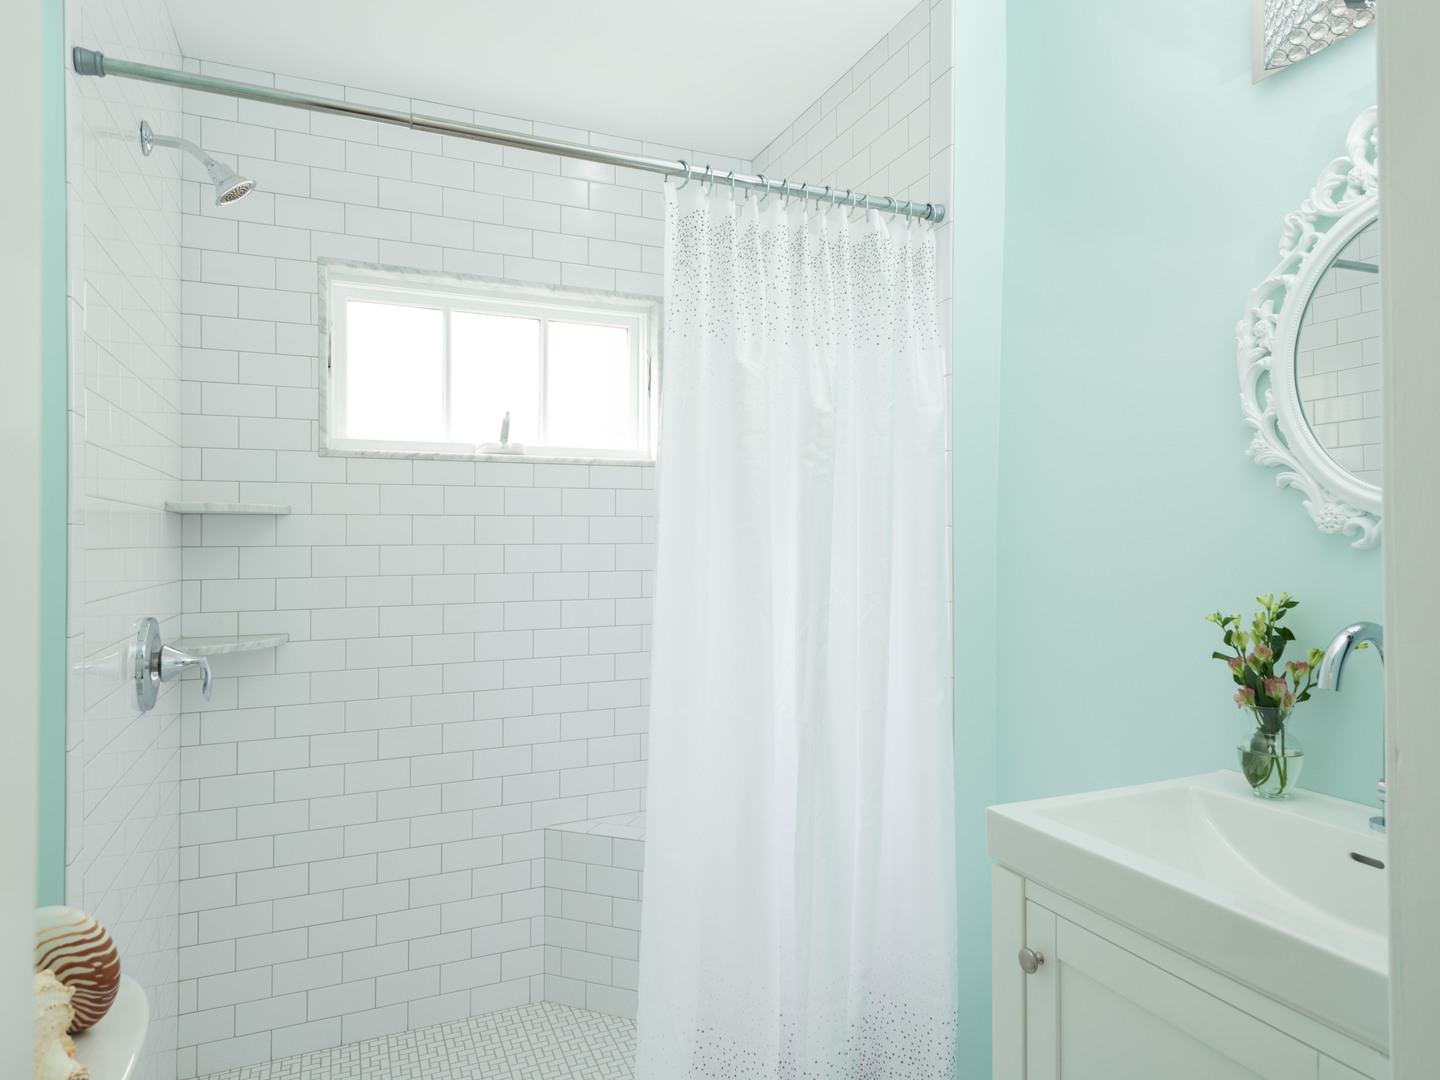 A blue and white shower curtain at Mooring Bed & Breakfast.